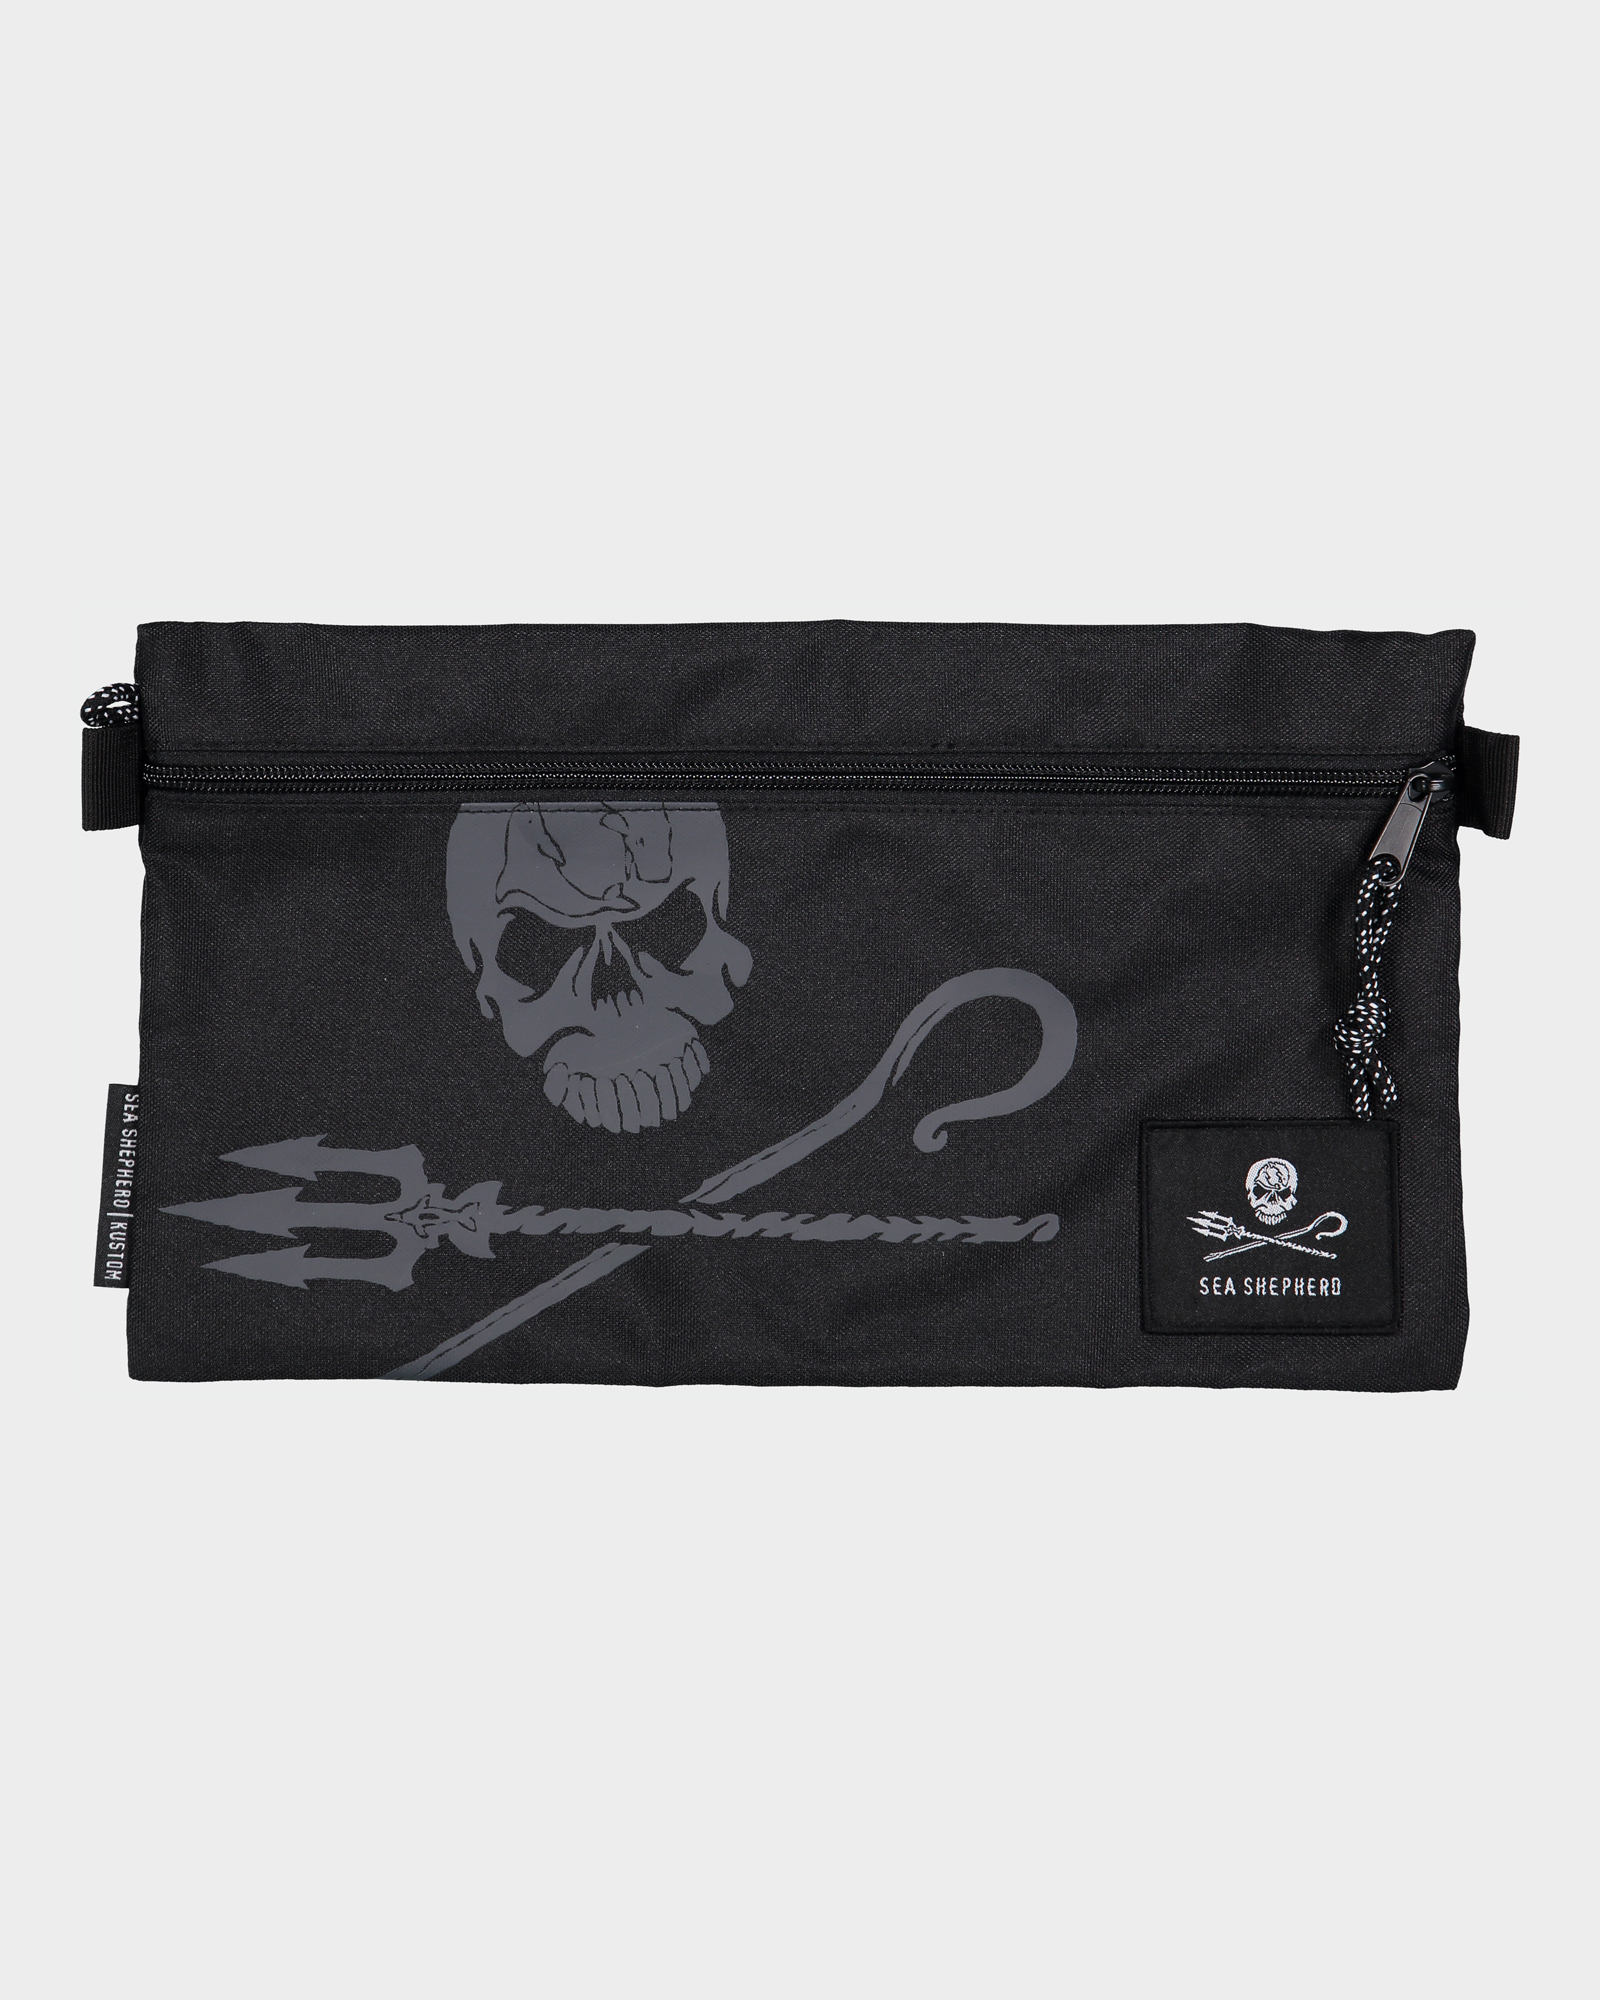 KUSTOM CLOTHING & ACCESSORIES SS PENC CASE BLK